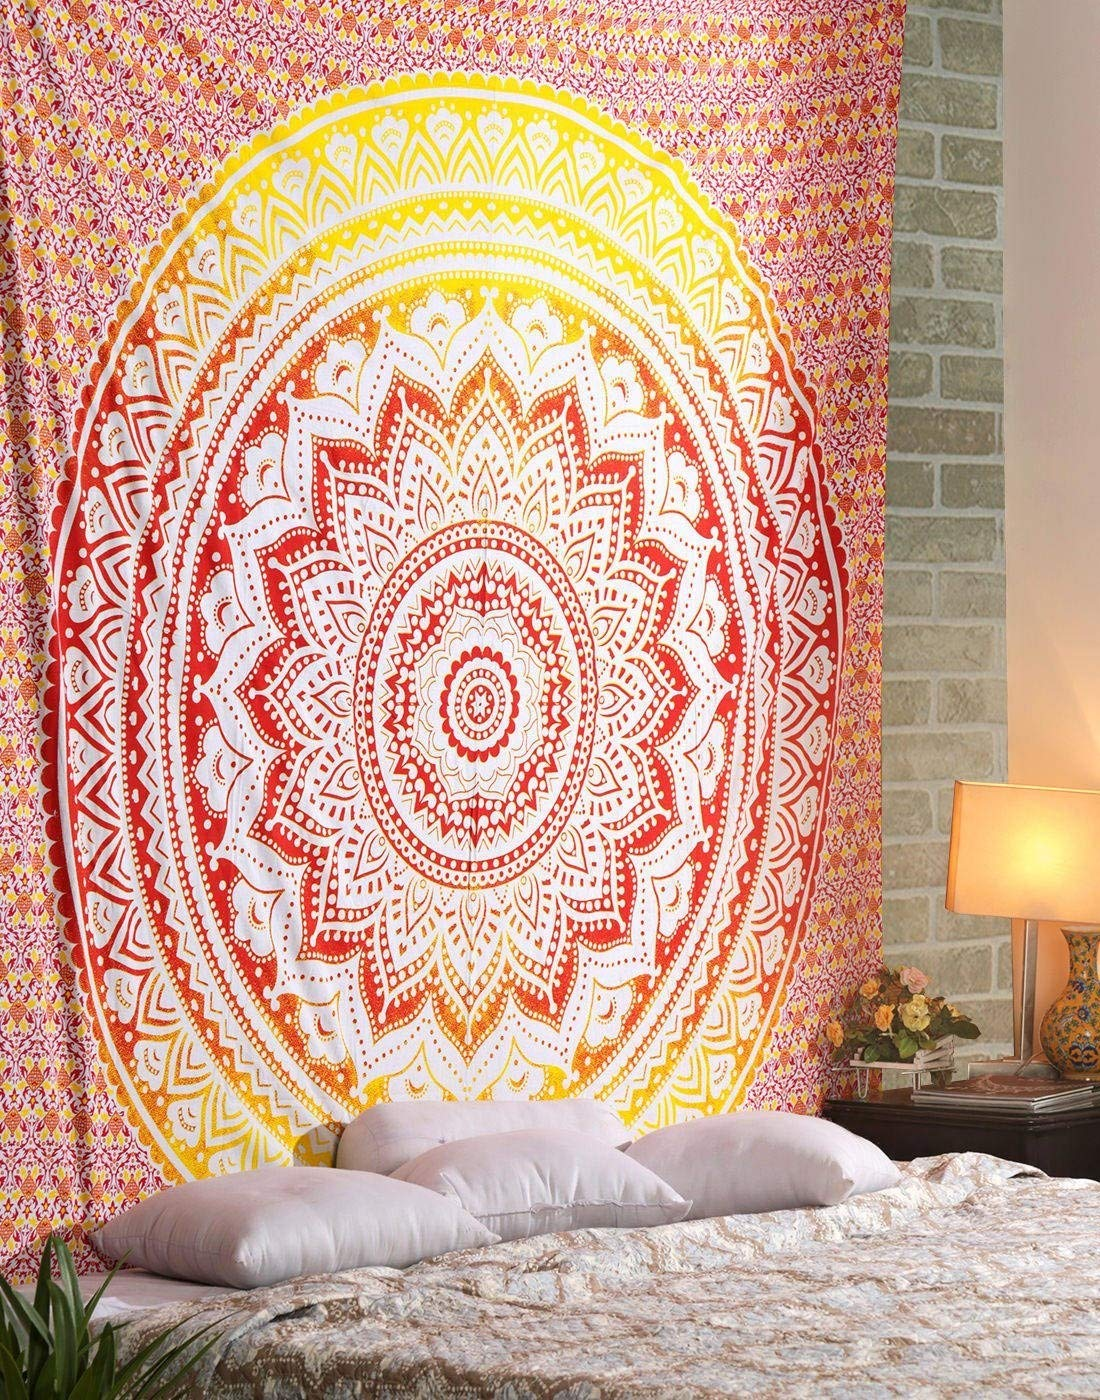 Dorm Decor Indian Mandala Wall Art Hippie Wall Hanging Bohemian Bedspread ExclusiveTwin Grey Black Ombre Tapestry by JaipurHandloom Ombre Bedding Mandala Tapestry